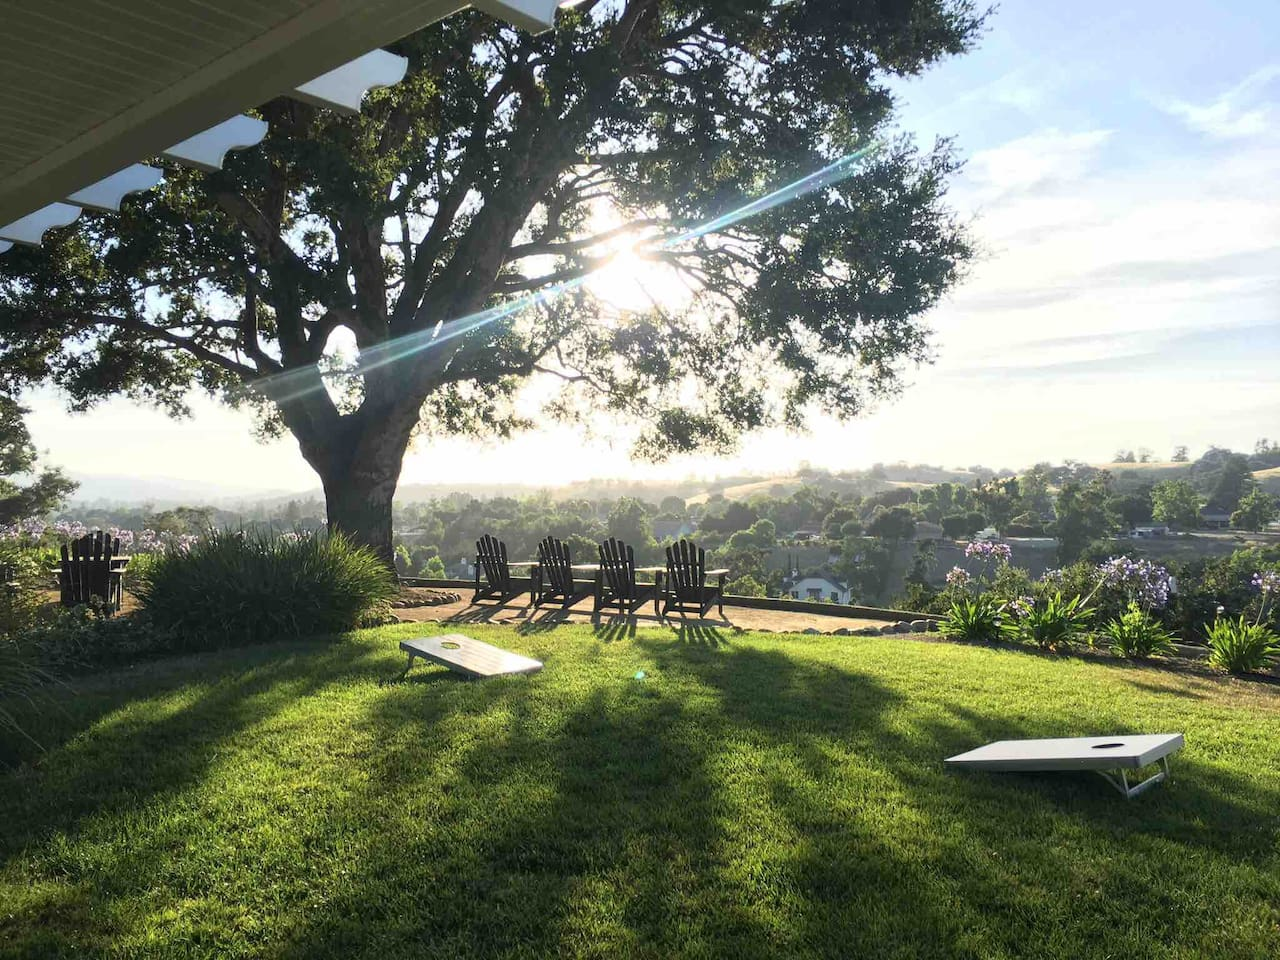 Enjoy the view with a cup of coffee, or wait for the gorgeous sunset with a glass of wine